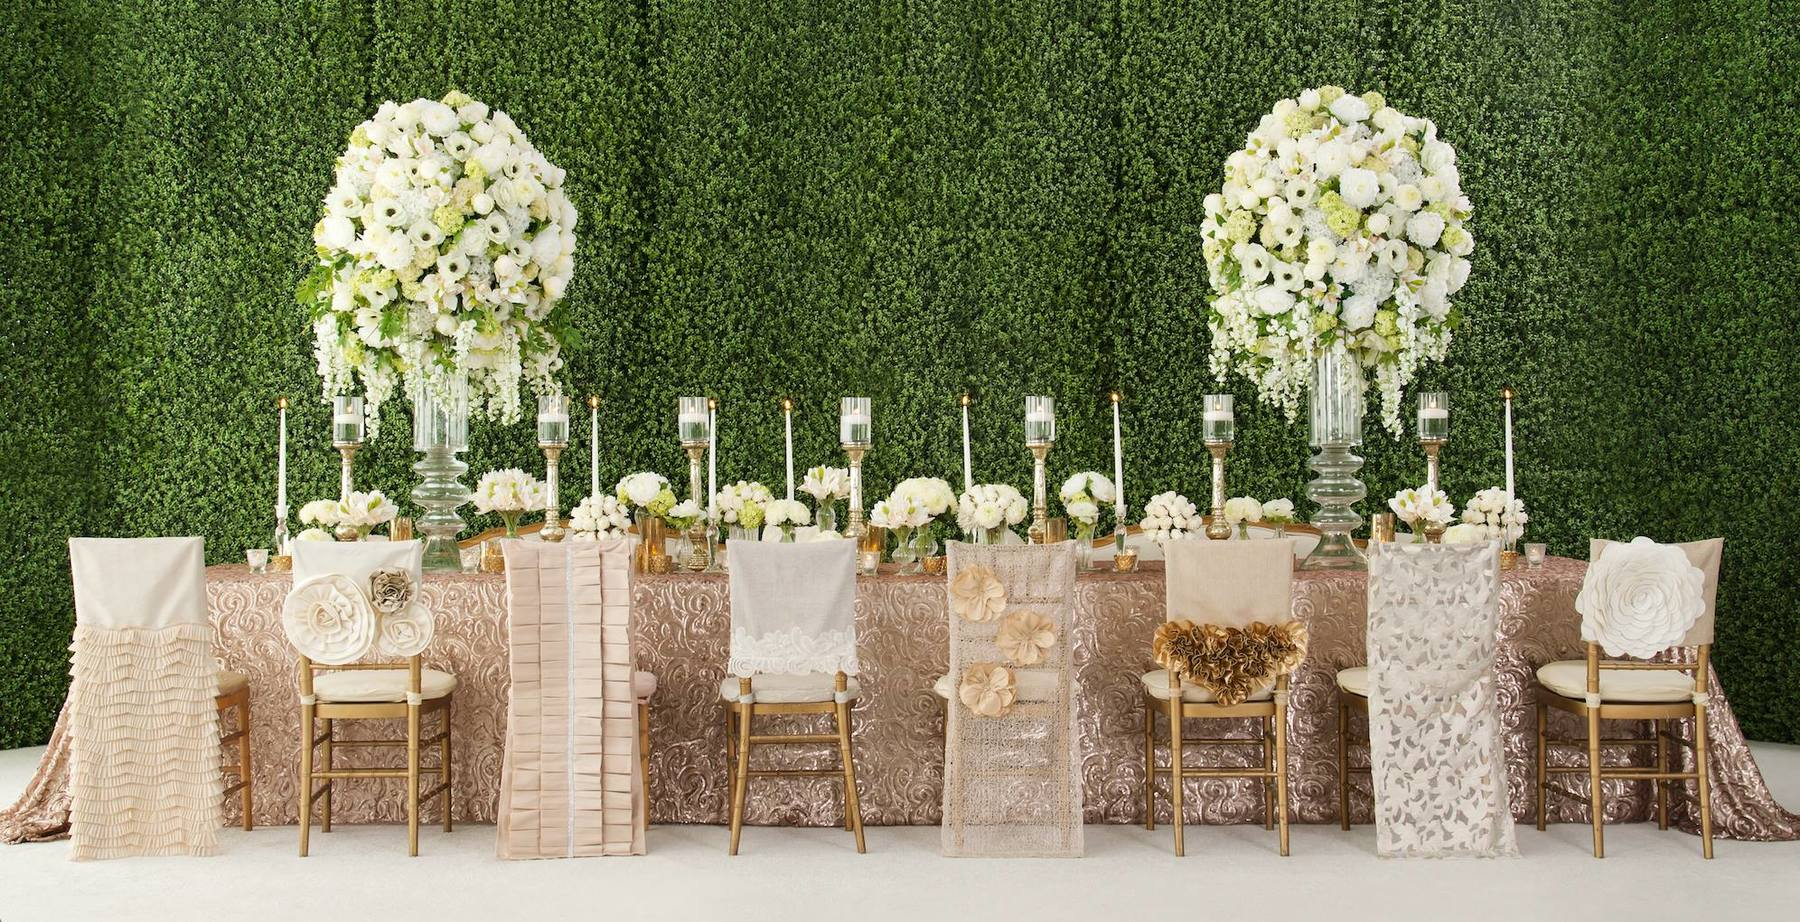 events by designer chair covers led bar table and chairs nuage designs couture linen furniture rentals for weddings